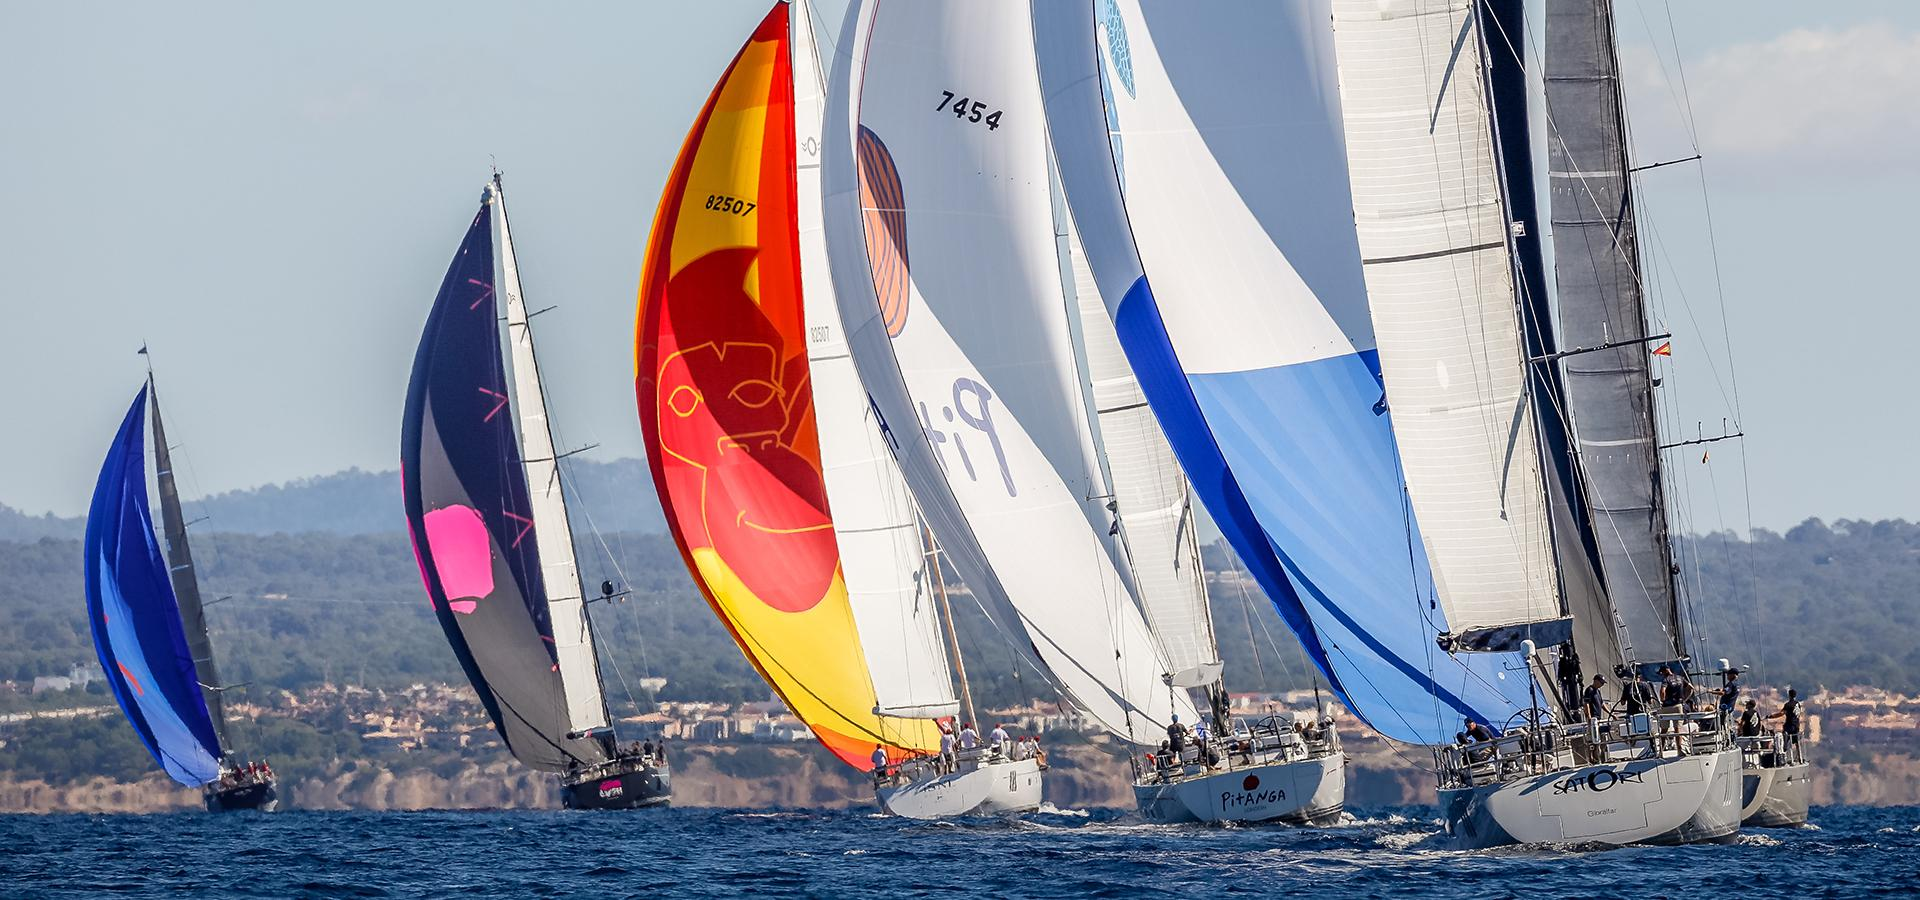 Oyster Yachts Sailing Boat Regatta D